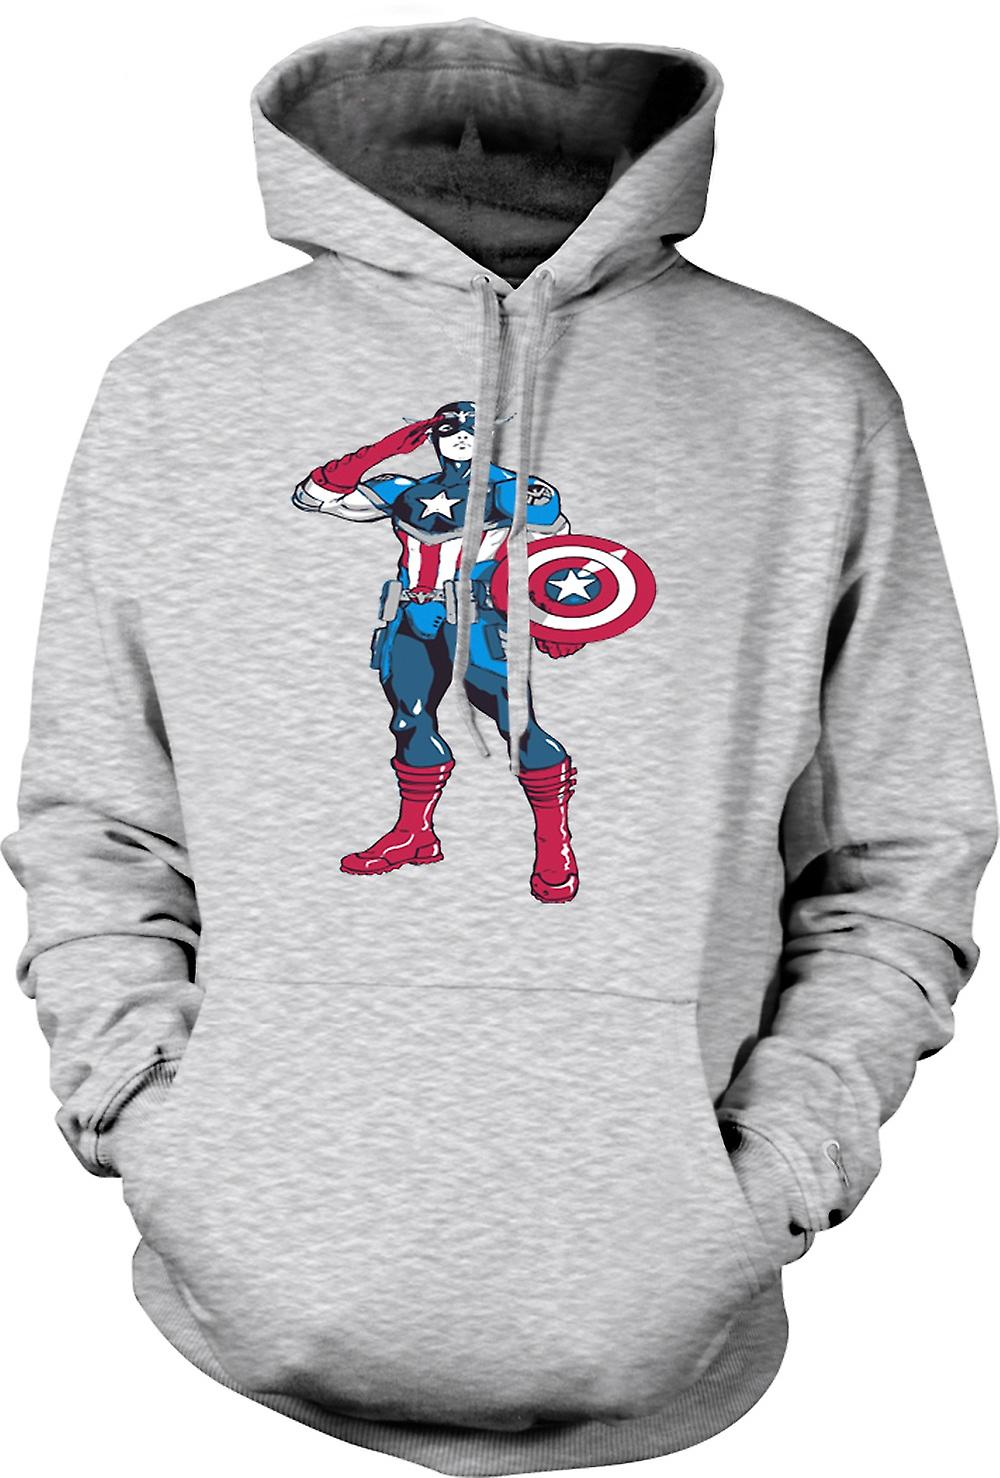 Mens Hoodie - Captain America Superhero - Sketch